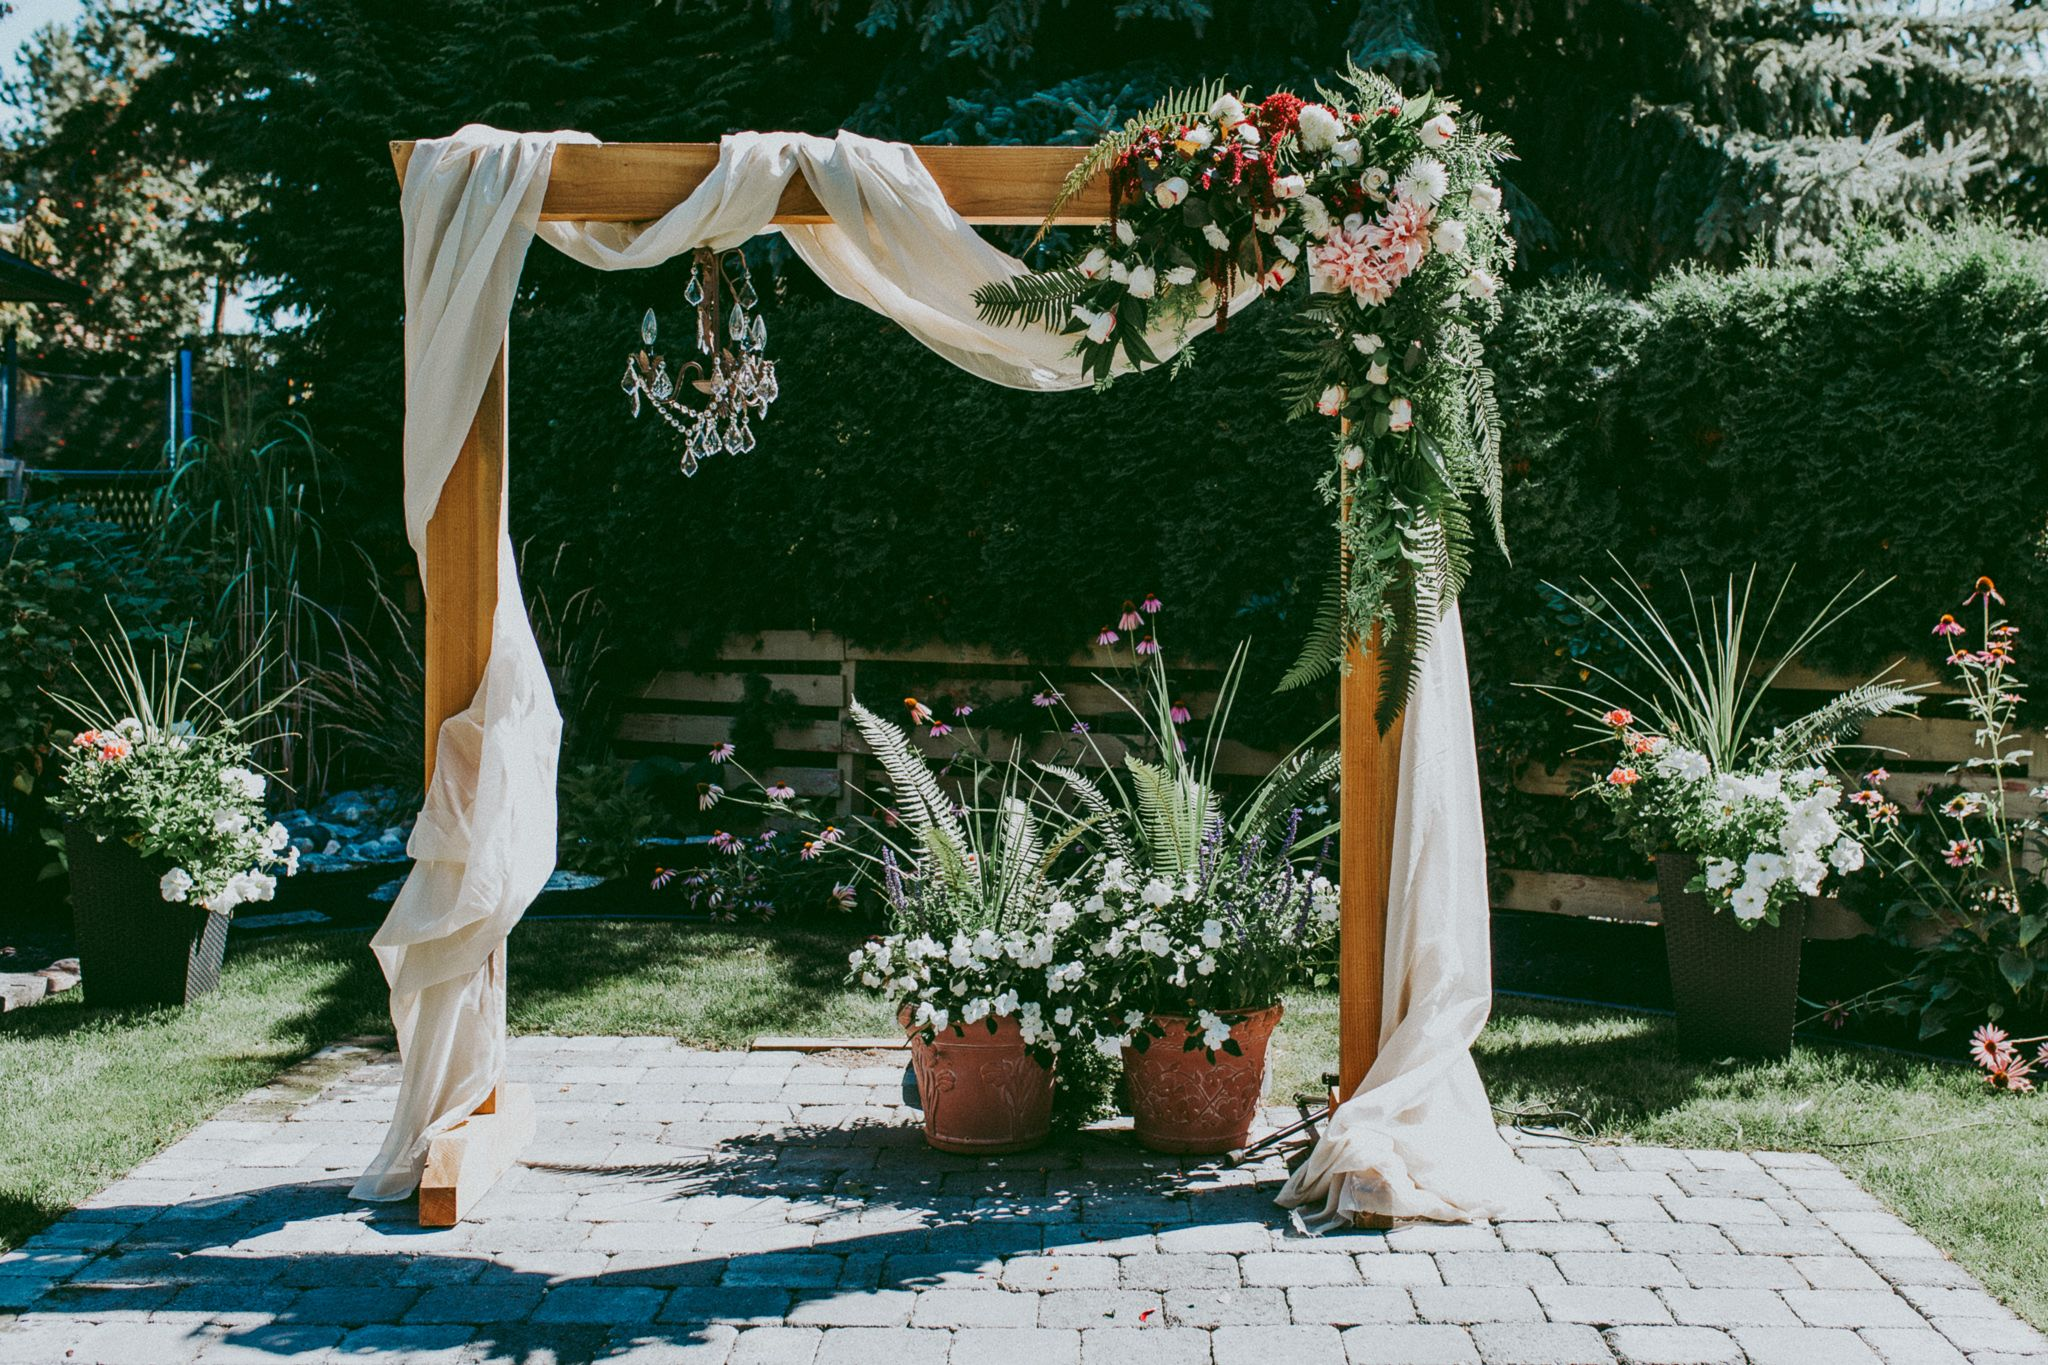 With Fabric And Flowers Wedding Arch Diy Arch Decoration Wedding Wedding Arch Flowers Diy Wedding Arch